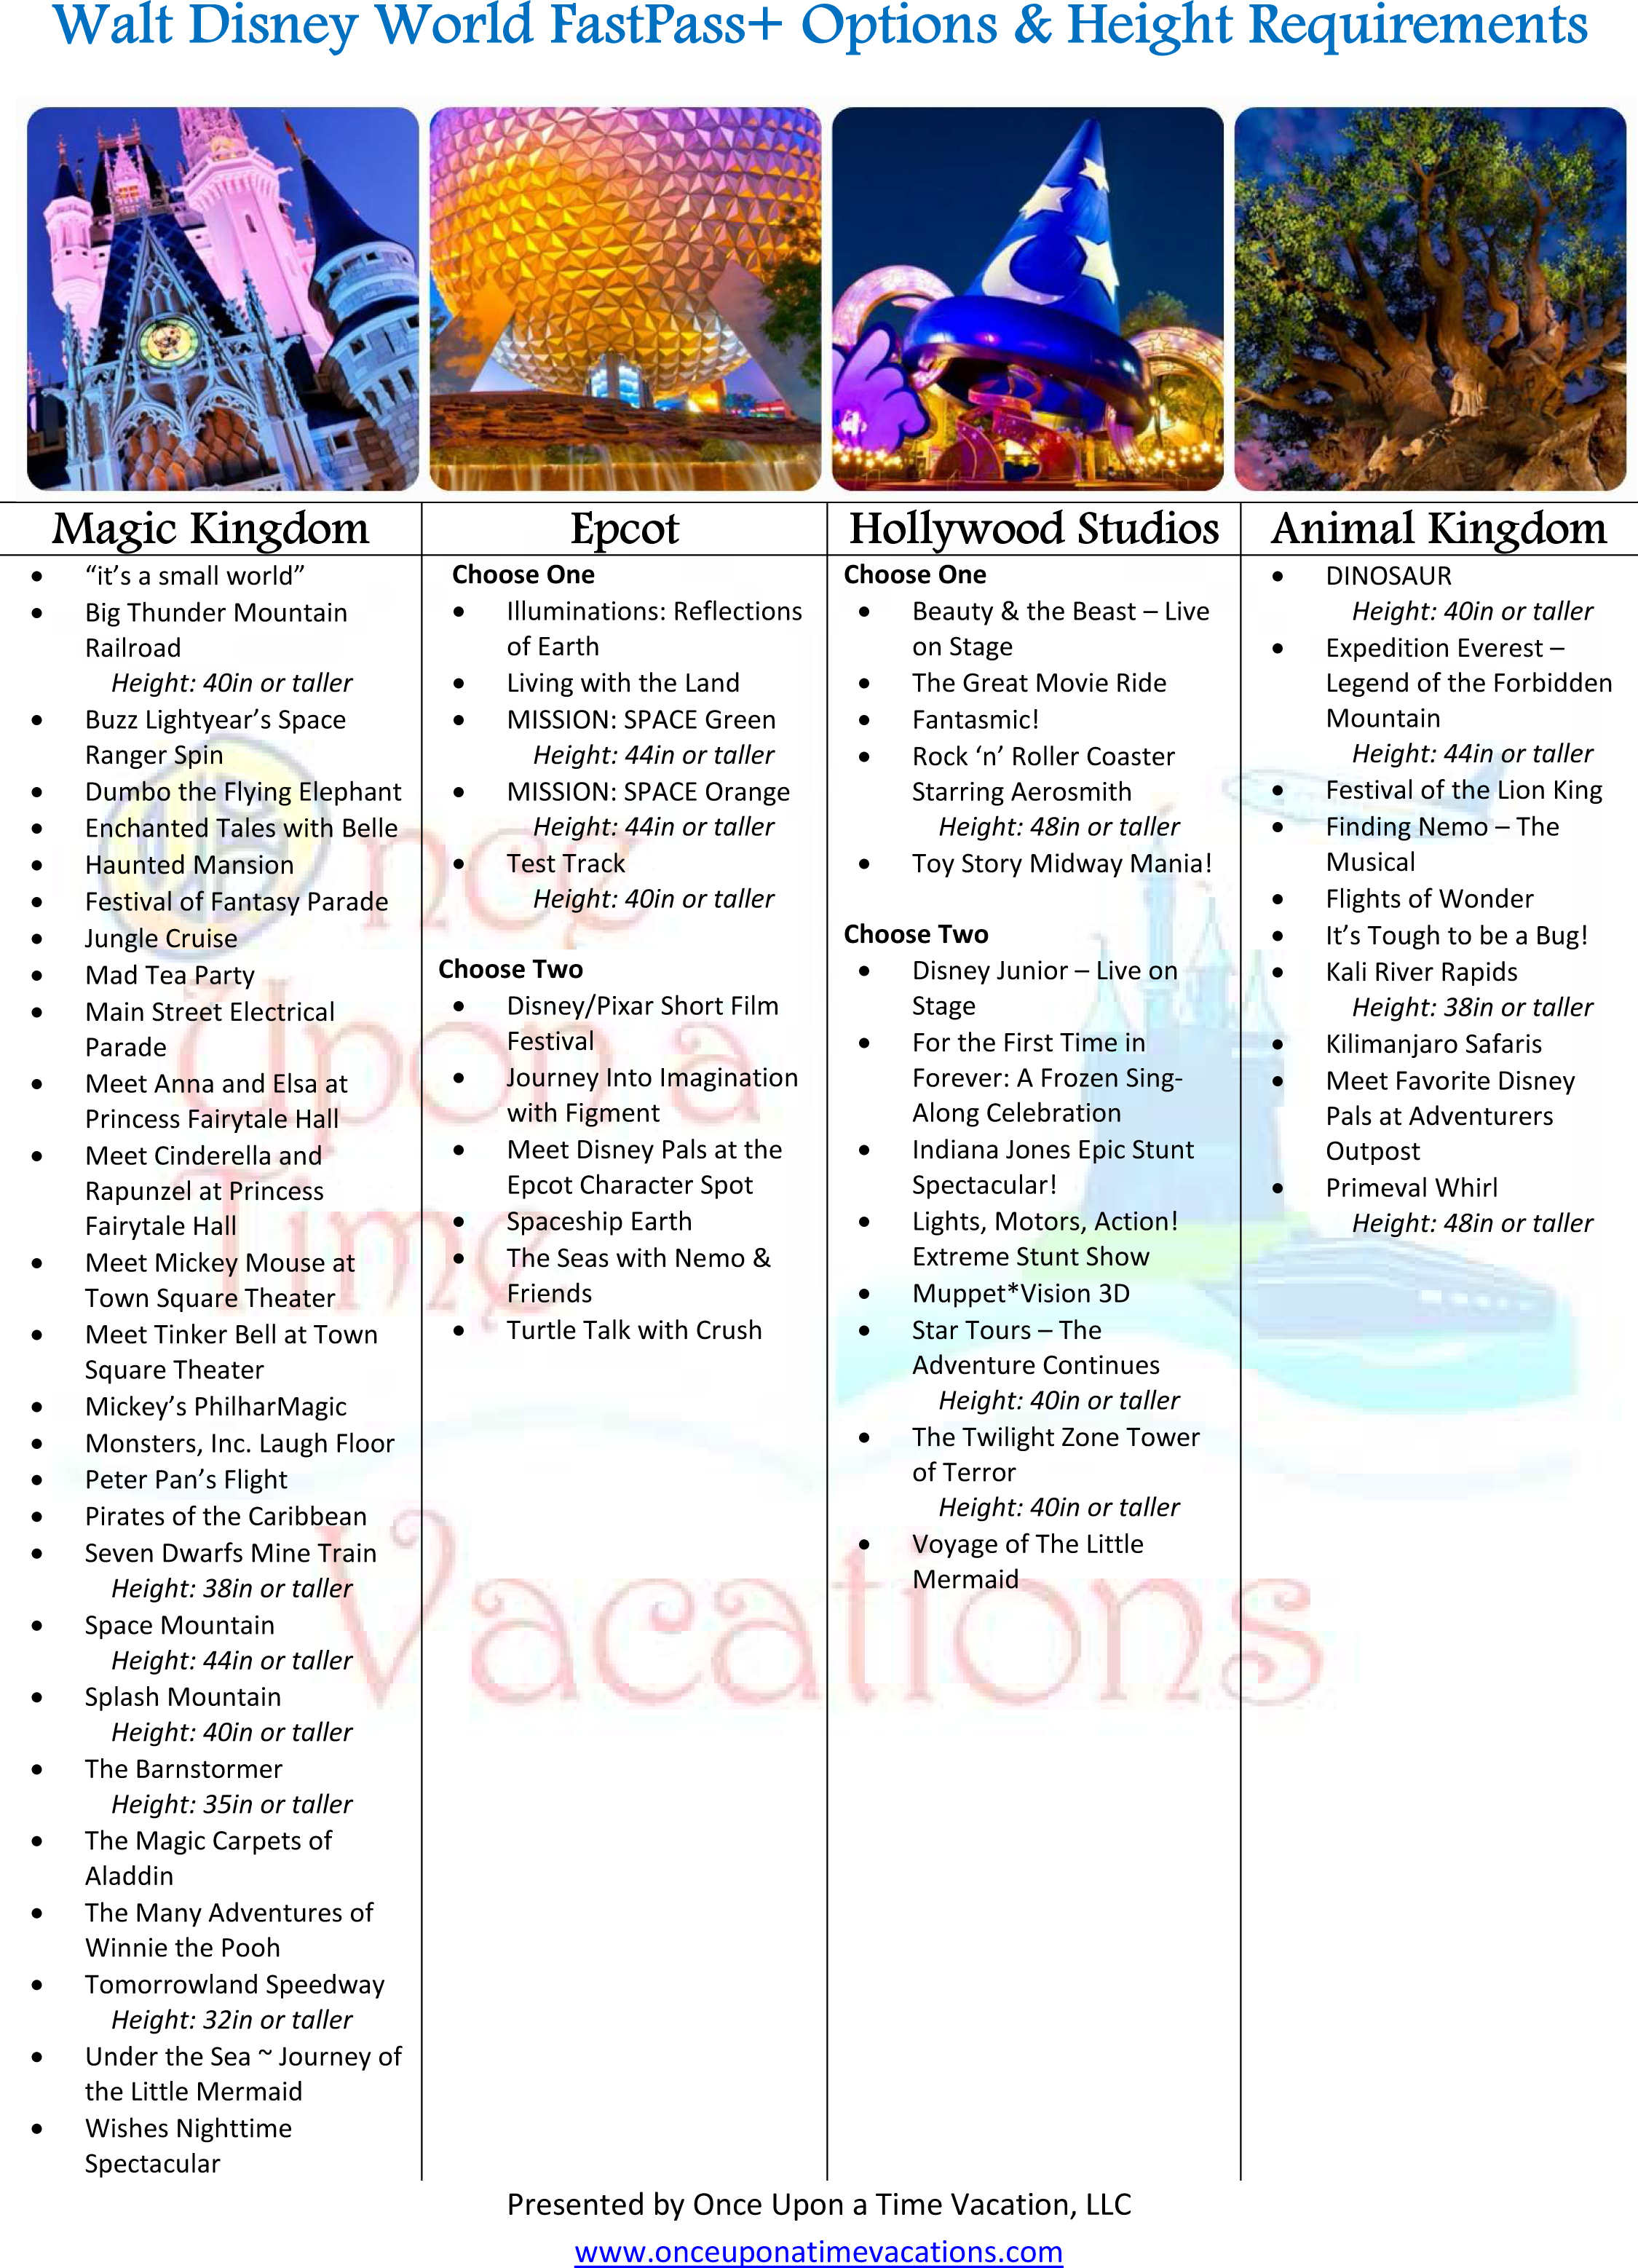 Printable Walt Disney World FastPass Tiers and Recommendations - Updated March 2016